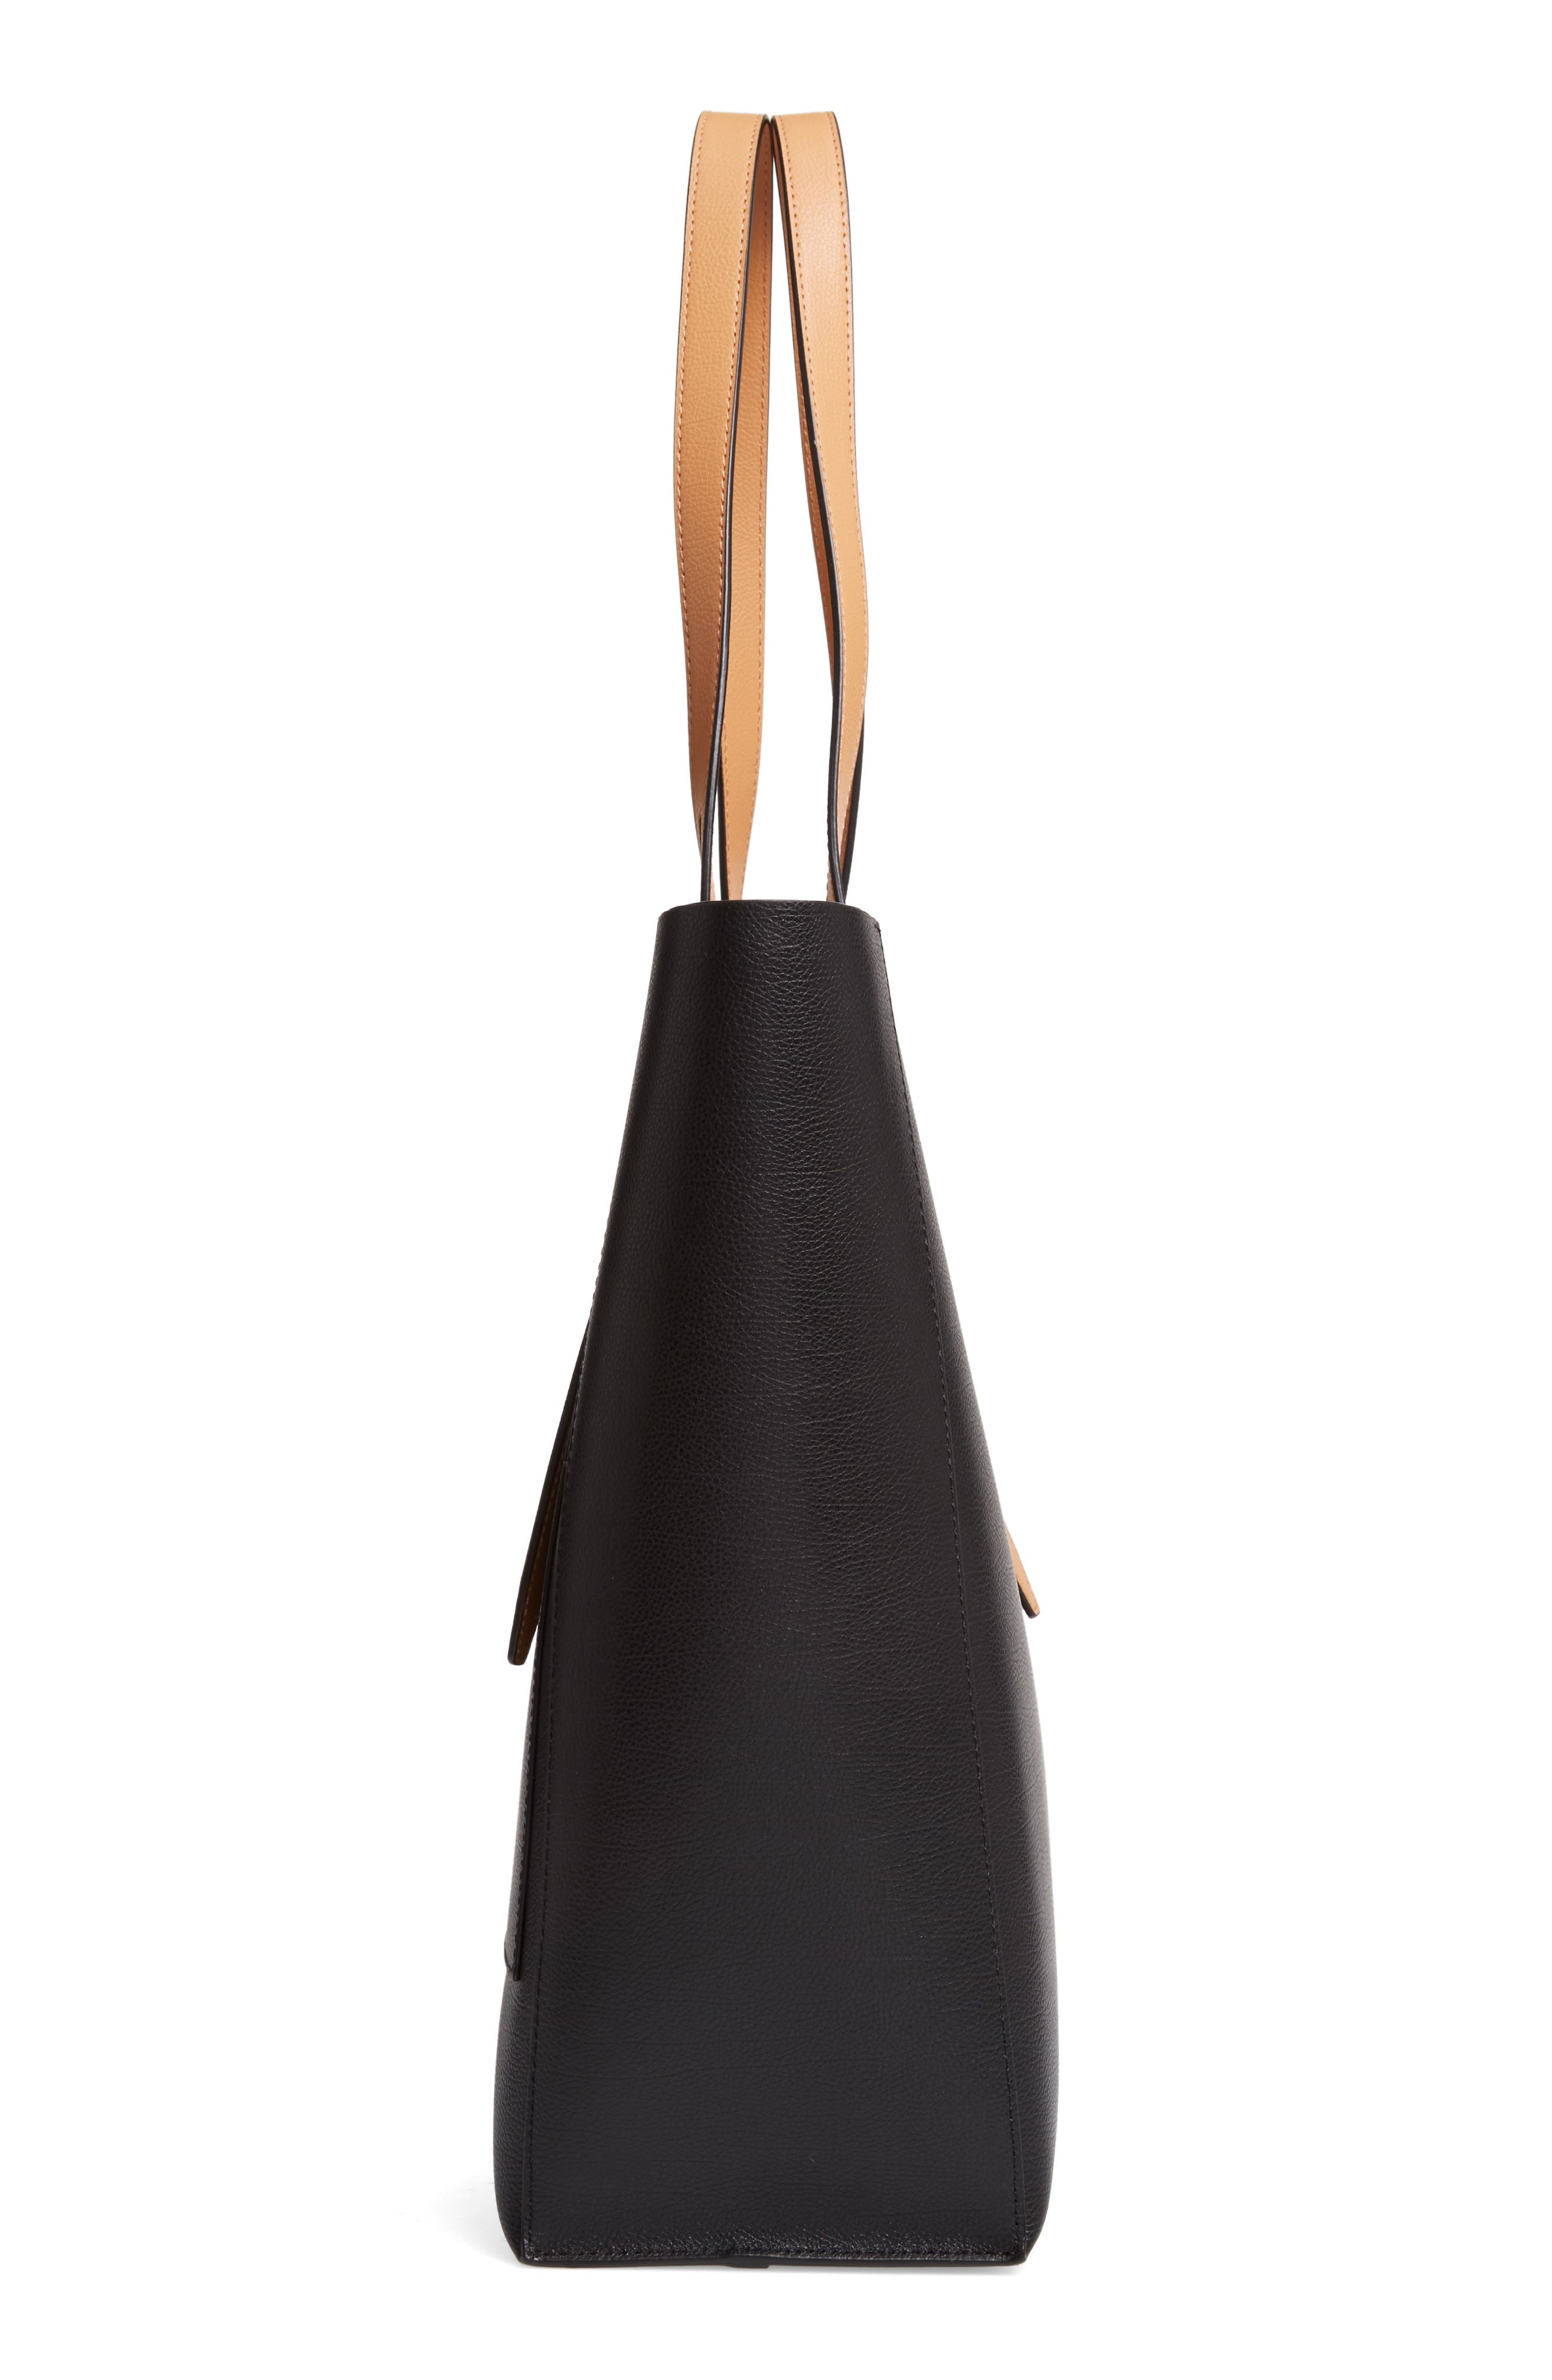 REBECCA MINKOFF, Stella Leather Tote, Alternate thumbnail 6, color, BLACK/ HONEY